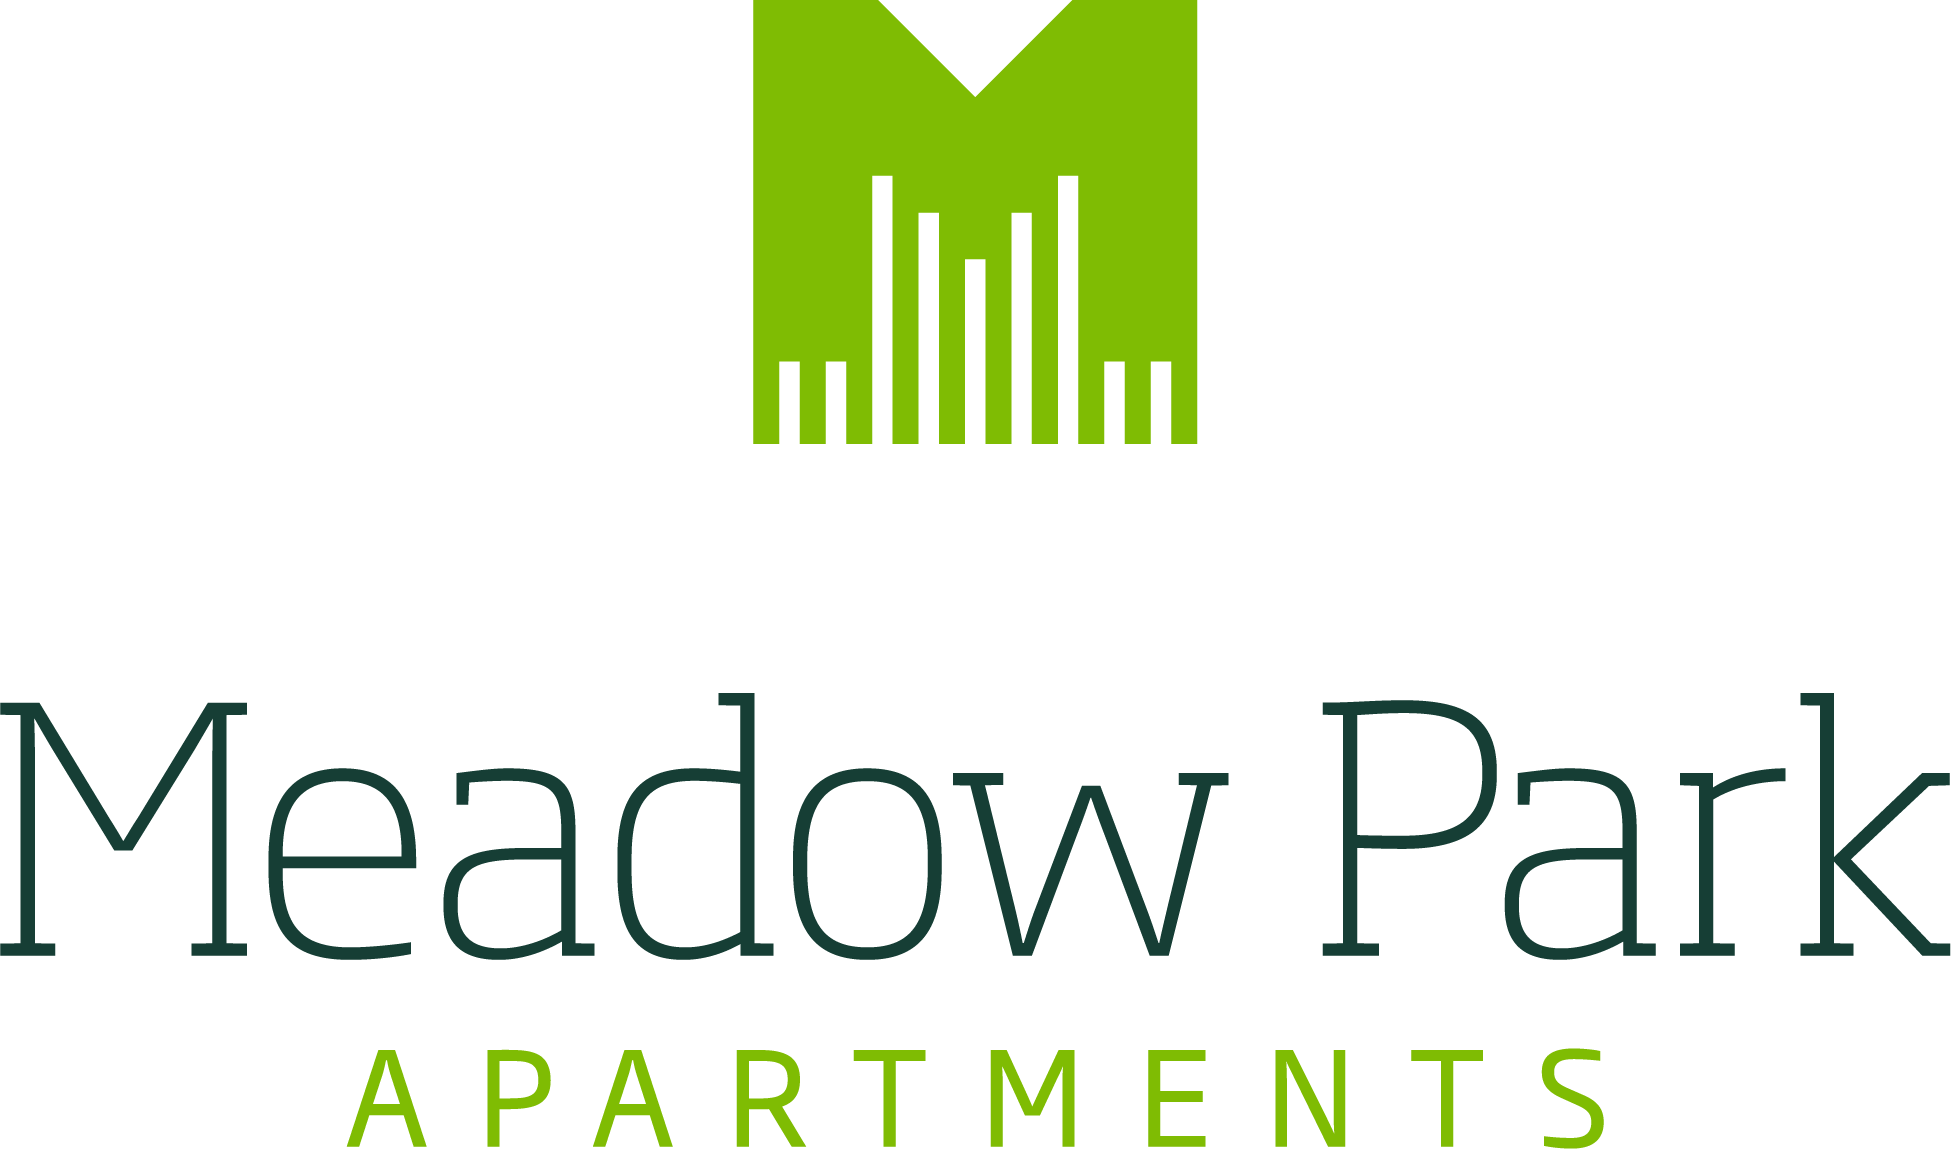 Regency - Meadow Park Apartments - Branding